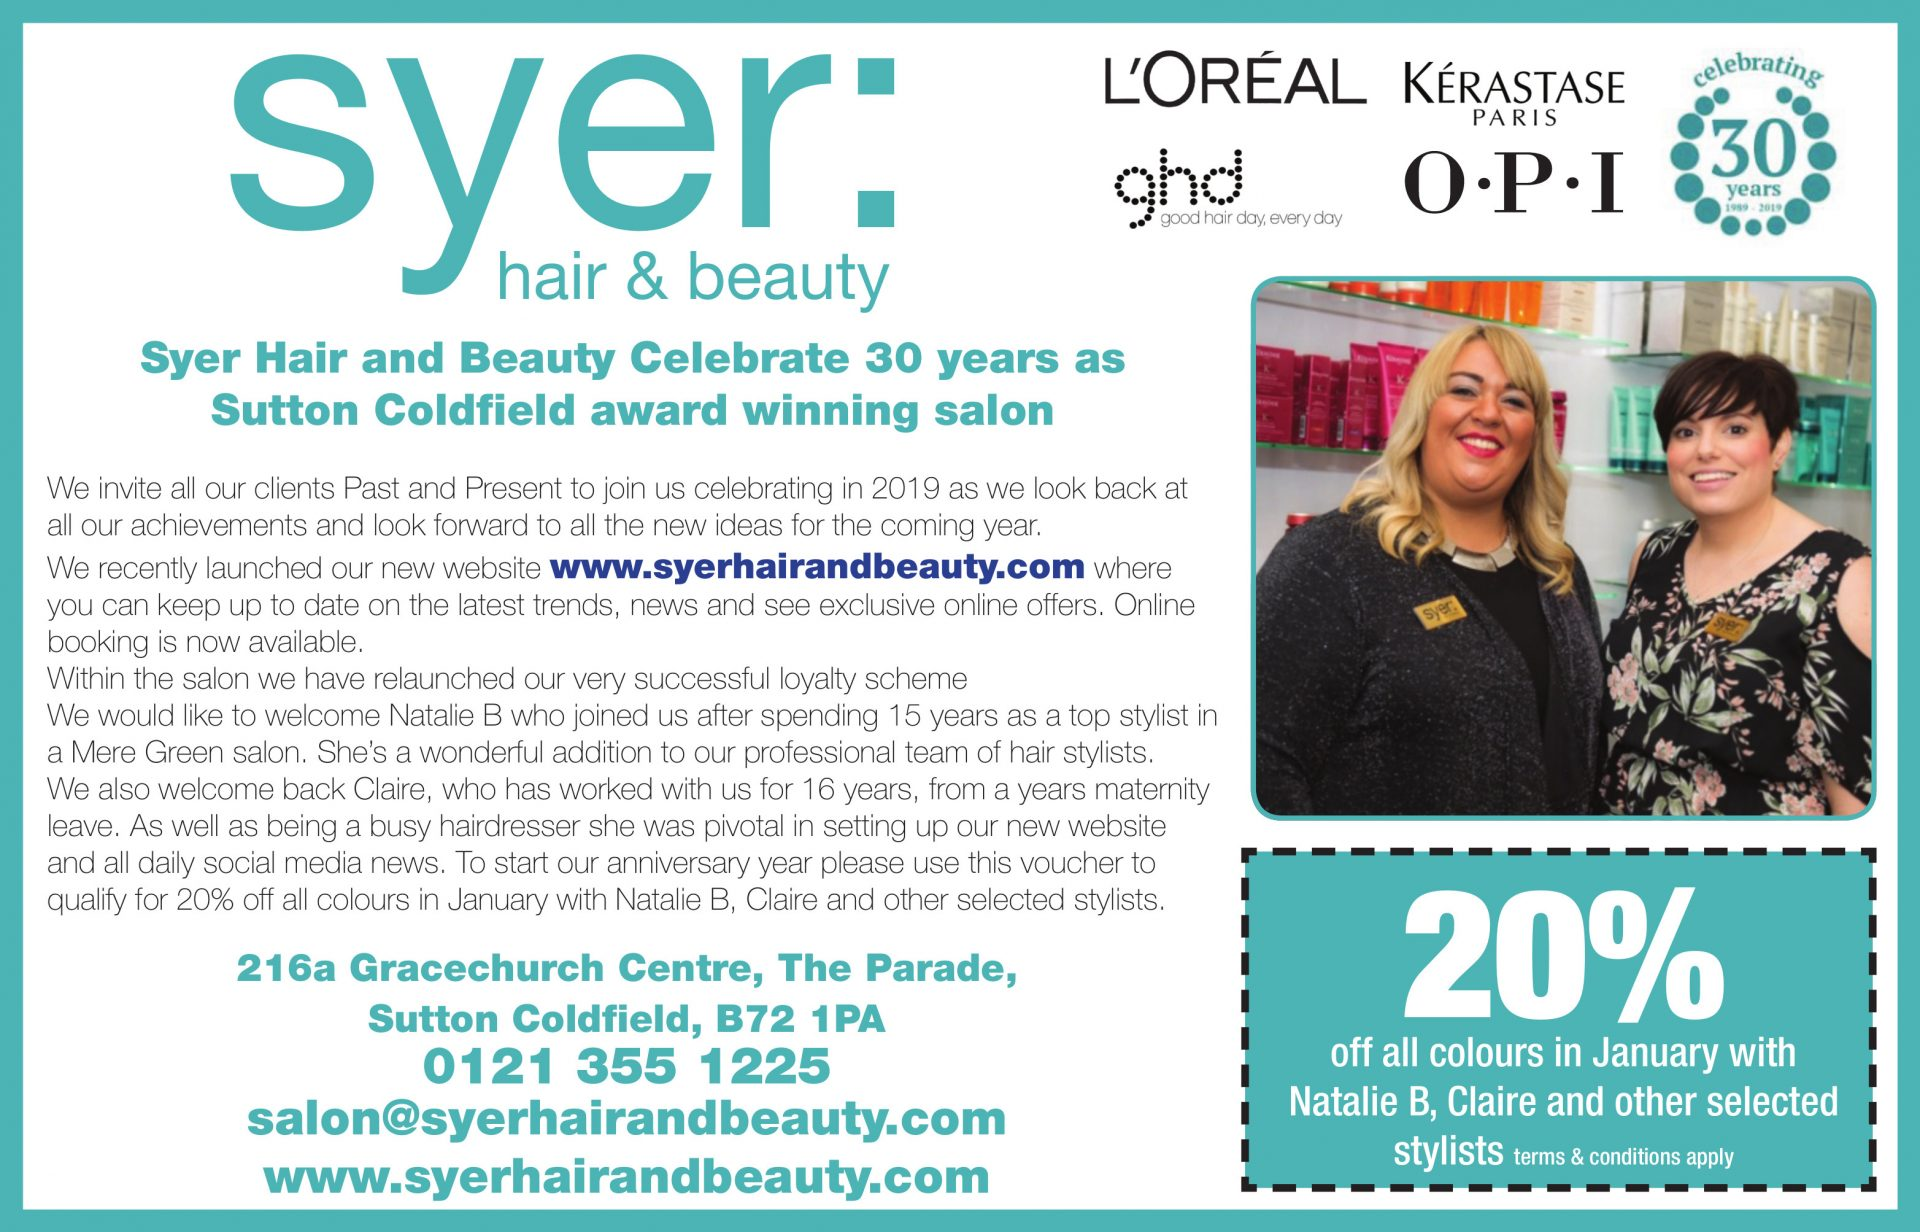 voucher, Syer Hair & Beauty, Sutton Coldfield